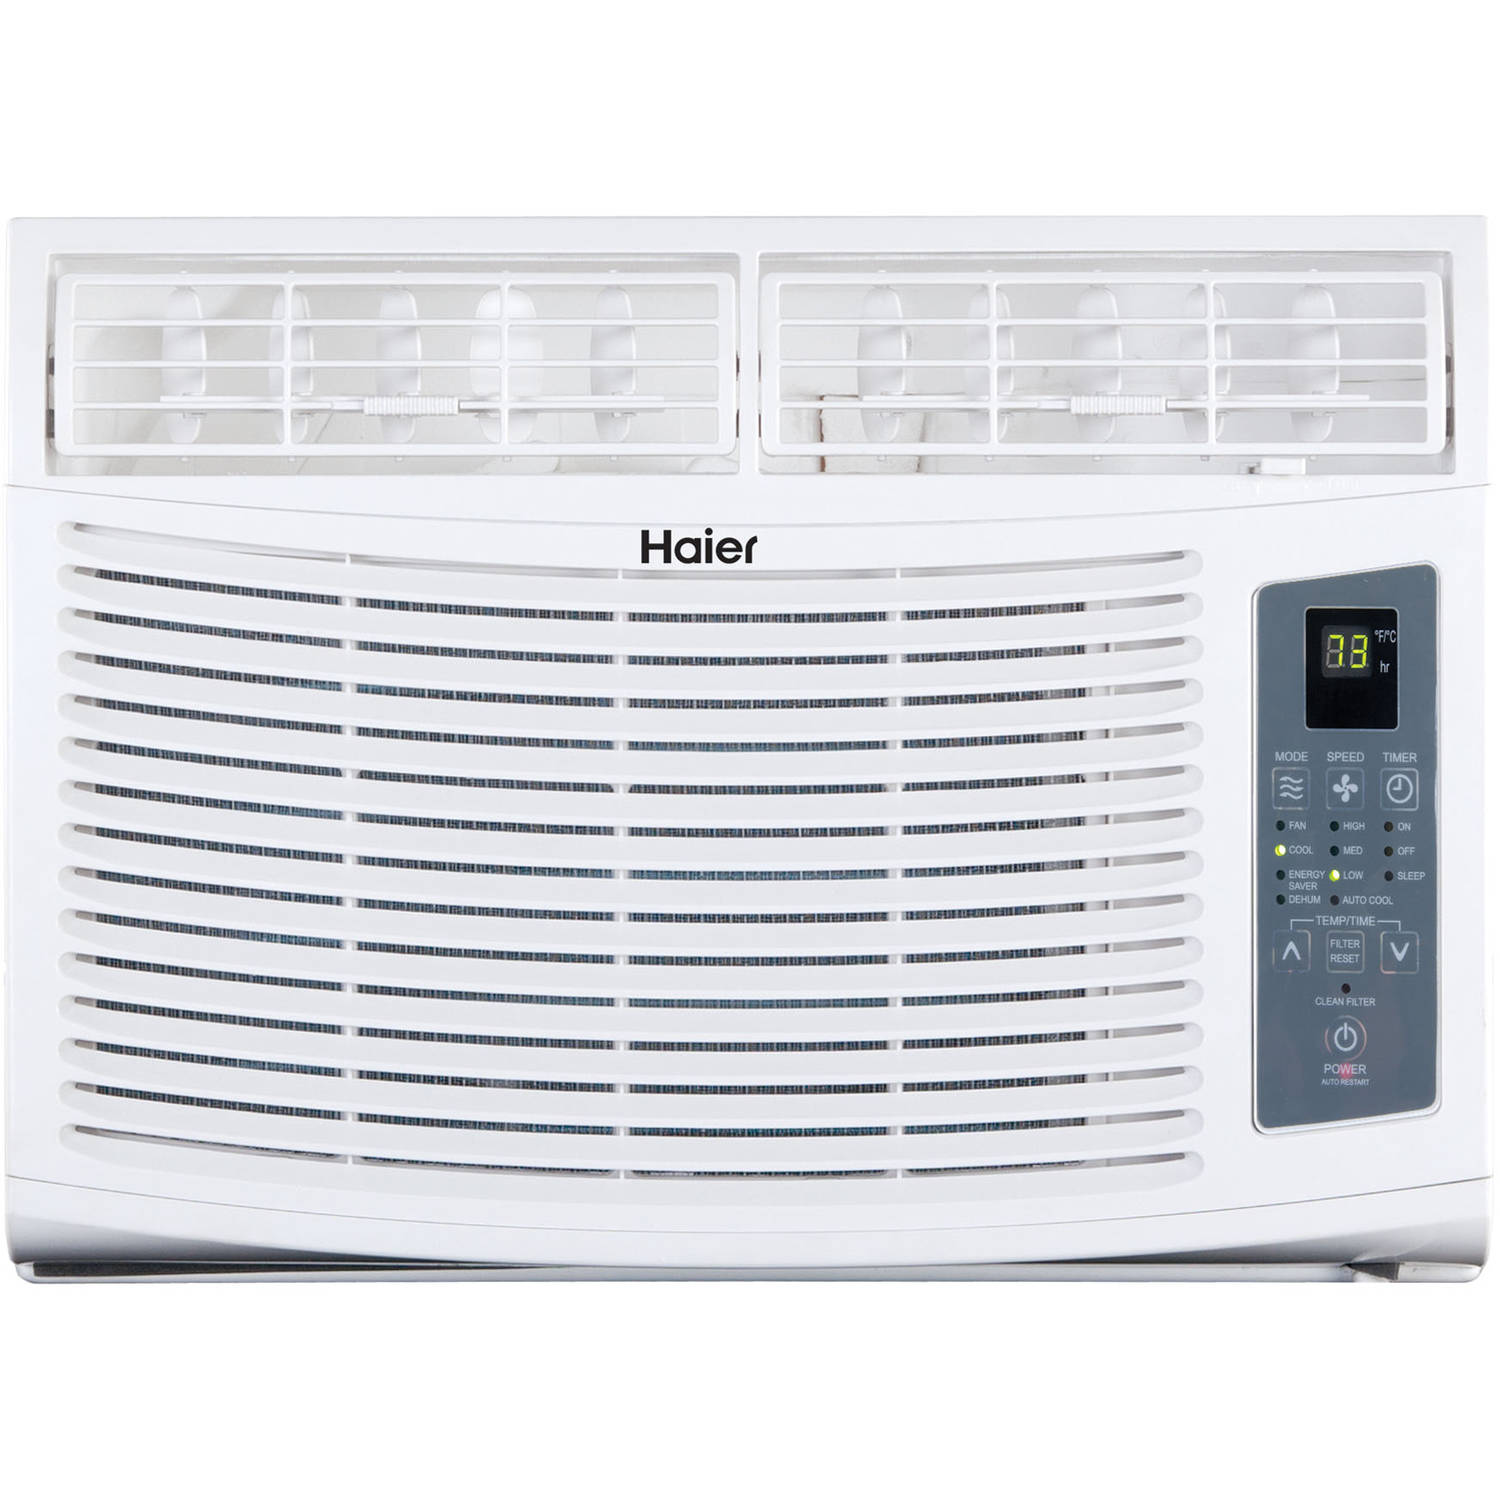 eddc78a3 f0f6 4c28 99e9 ae48fb812ea0_1.8a9a2449b64412d8ab561aa00e9fcd6a haier hwe10xcr l 10,000 btus air conditioner, white walmart com haier window air conditioner wiring diagram at crackthecode.co